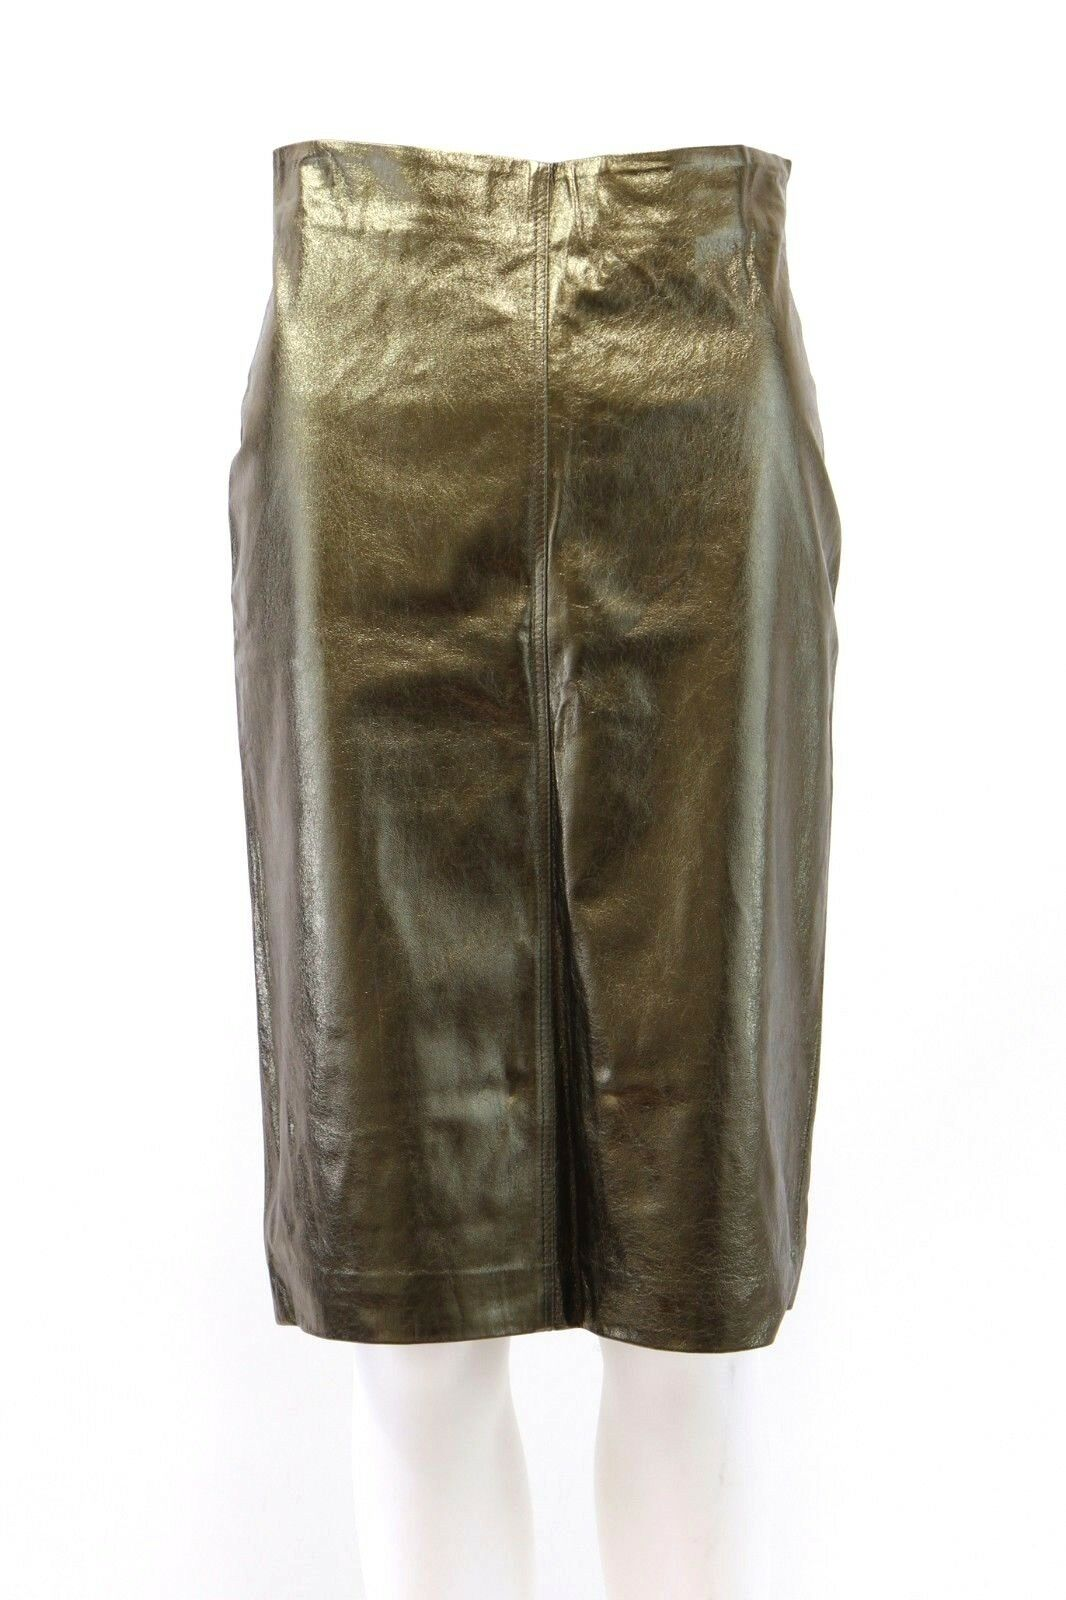 NWT 2695 Brunello Cucinelli 100%Leather Textured Metallic gold Pencil Skirt A181